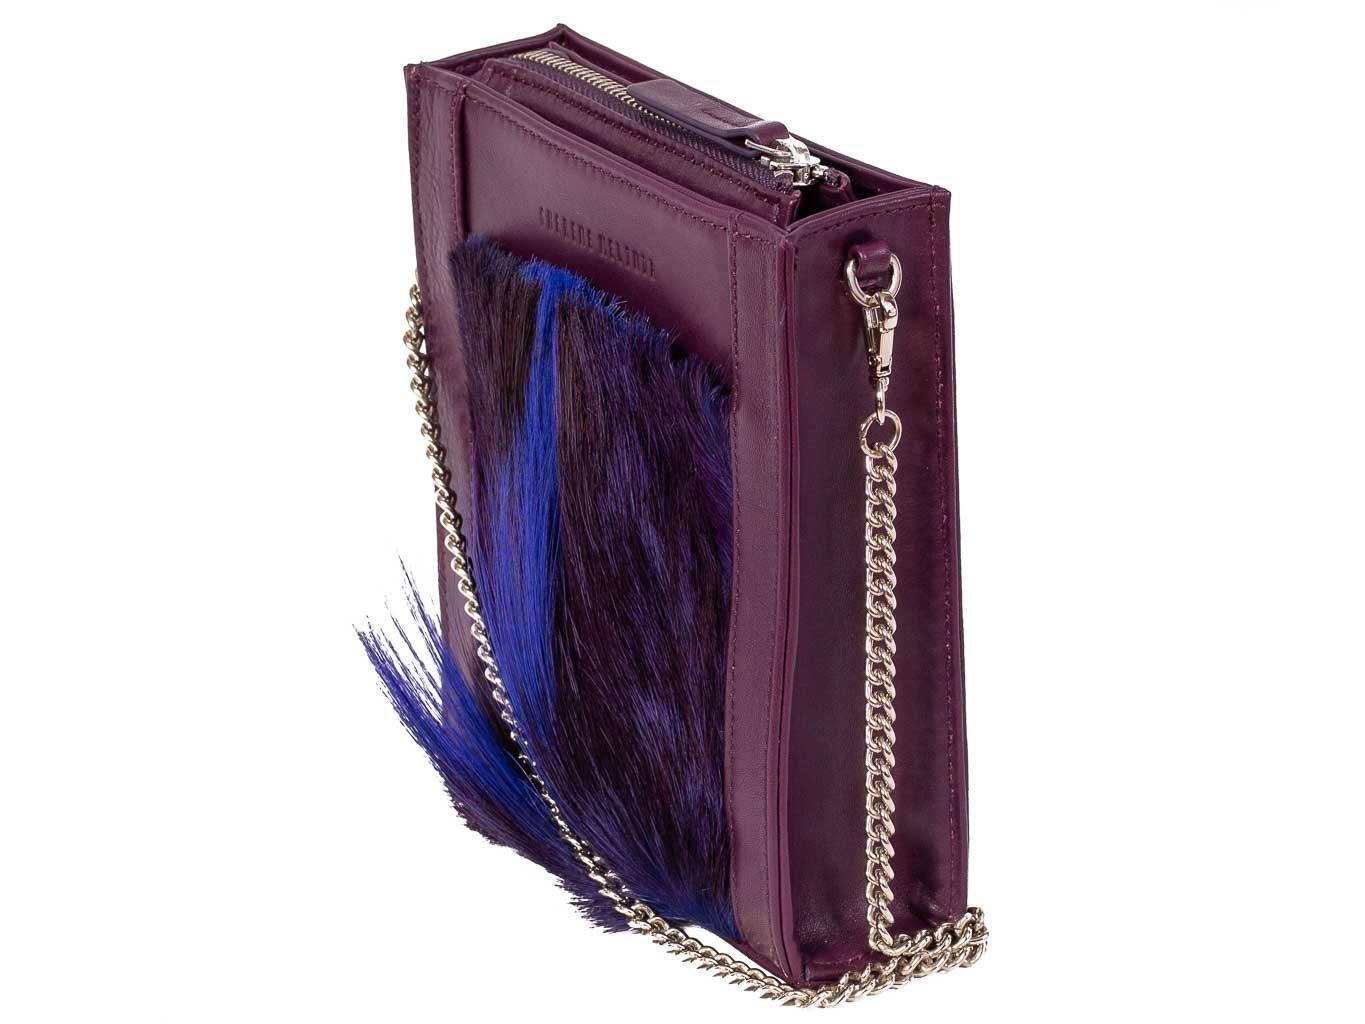 Messenger Springbok Handbag in Deep Purple with a fan feature by Sherene Melinda front strap